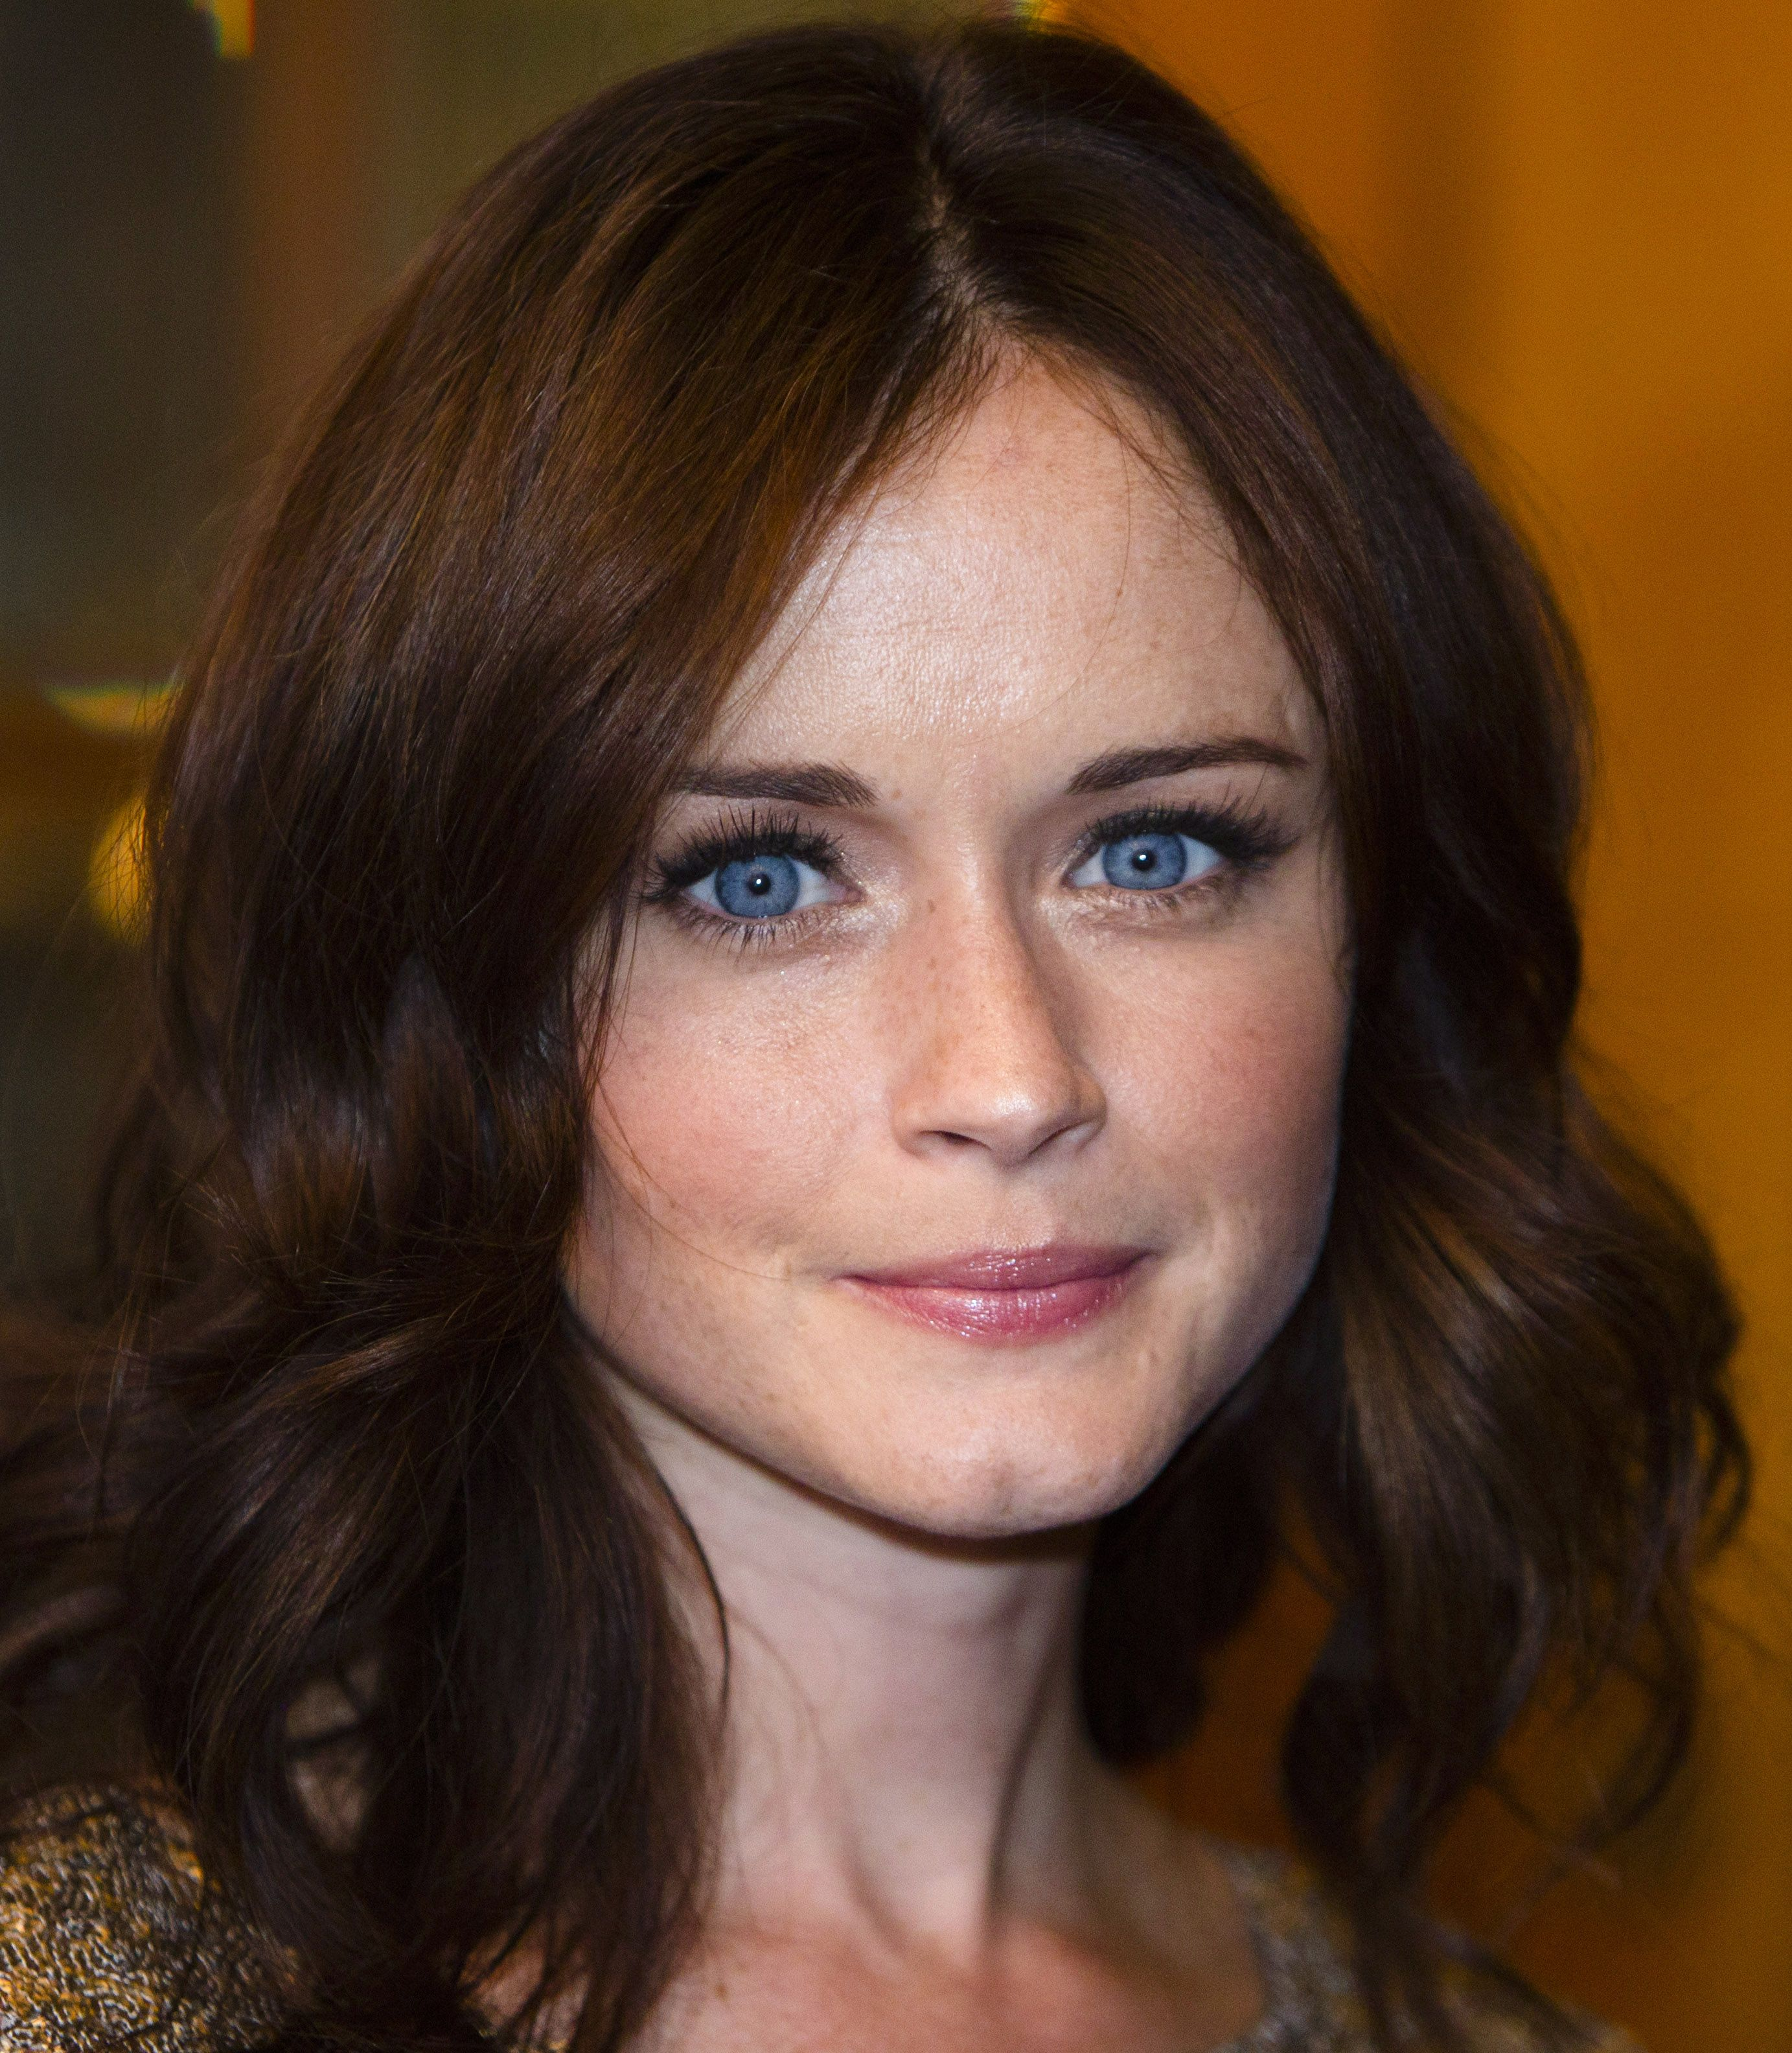 50 Shades Of Grey Movie Casting Alexis Bledel Candidacy For